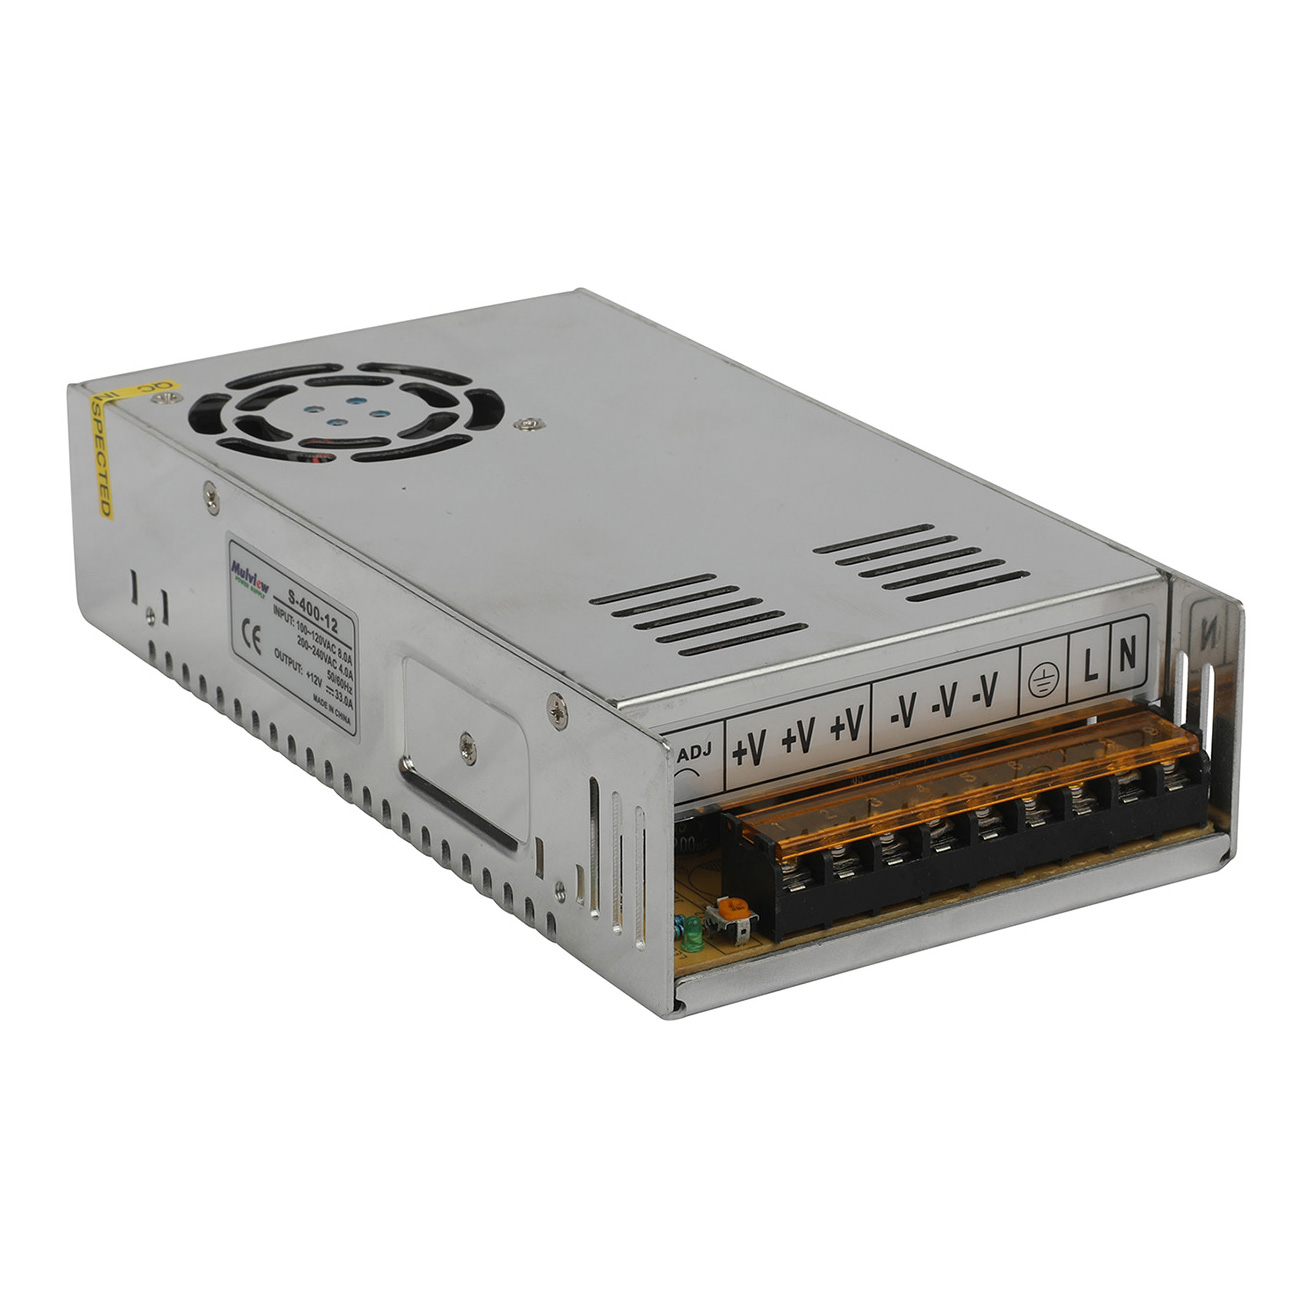 400W single output switching power supply